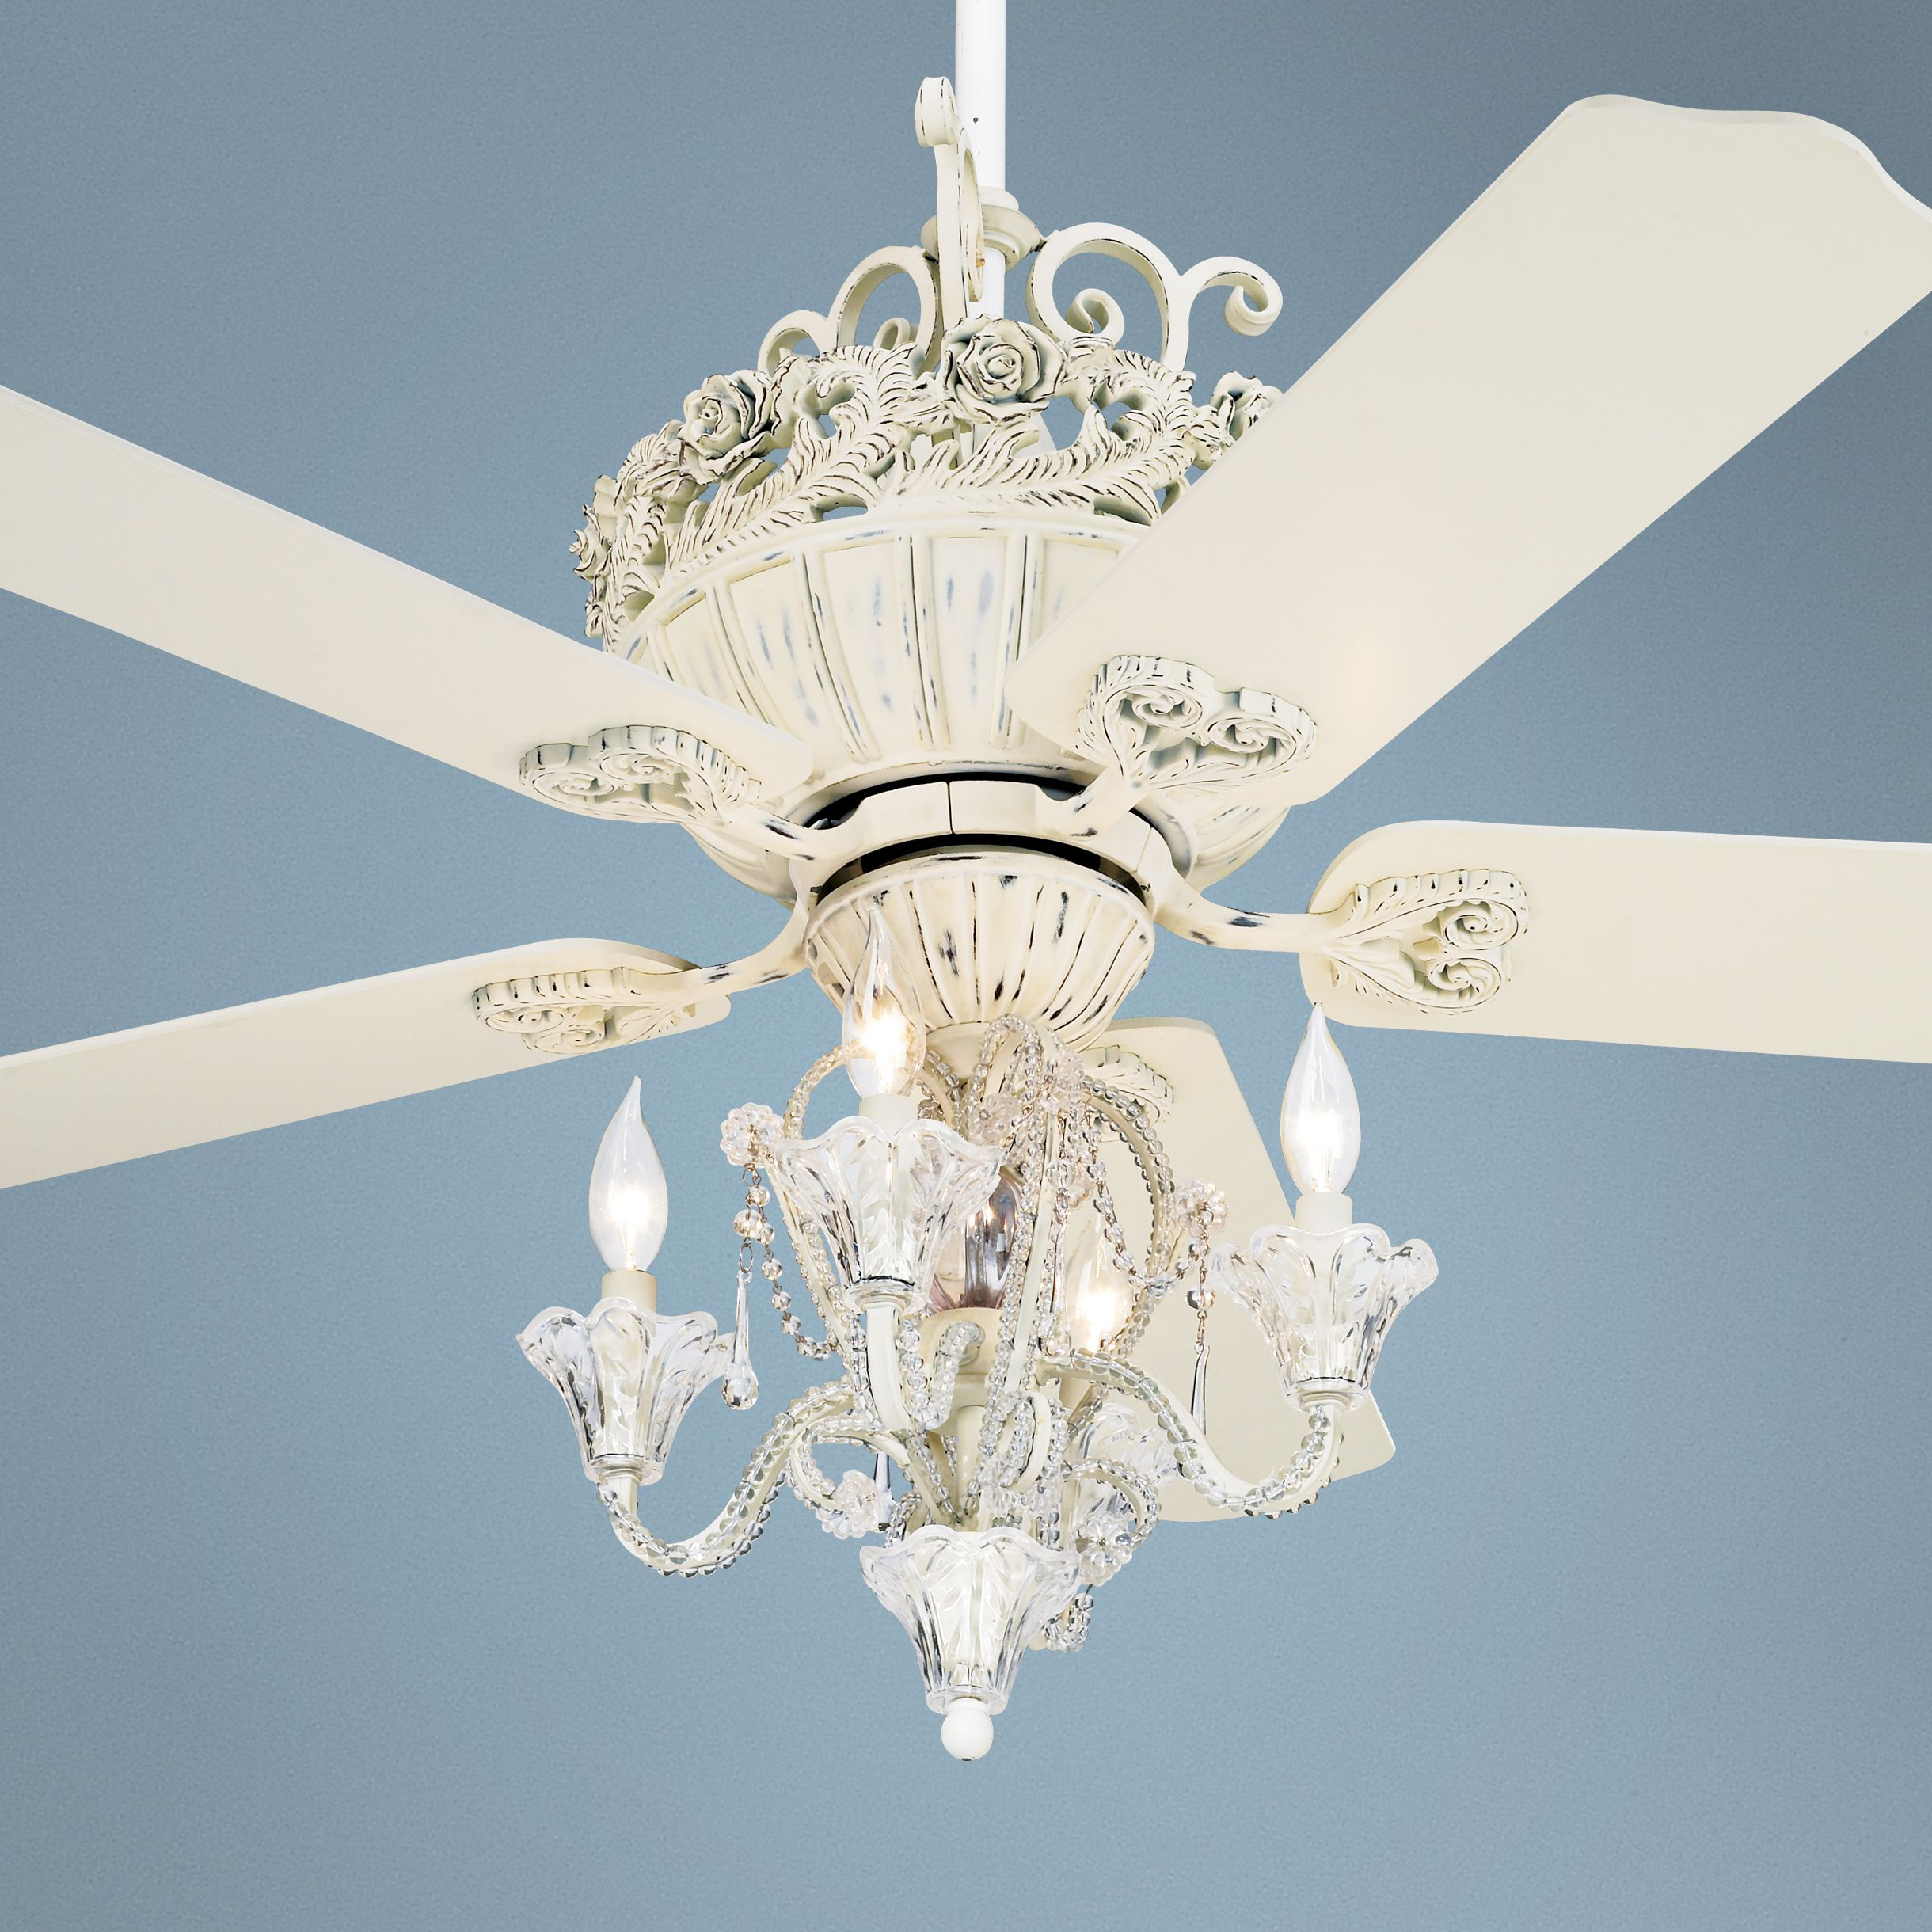 kit lights should who chandelier lighting of medallions fan with design chandeliers ceiling amazing elegant